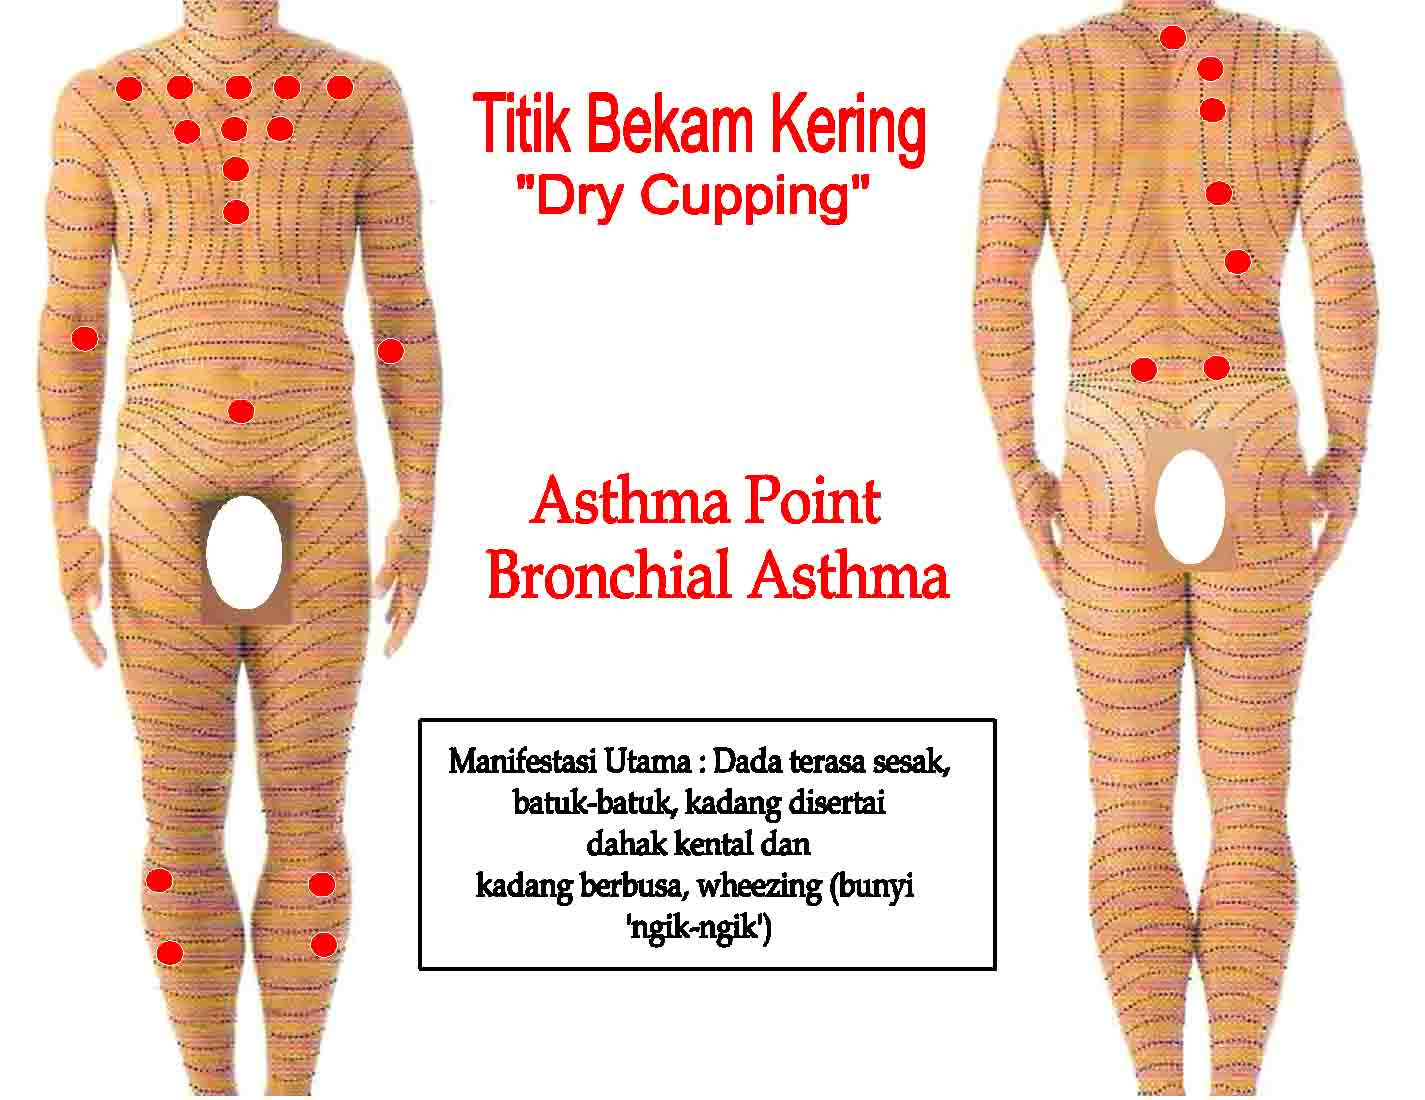 dry-cupping-asthma.jpg